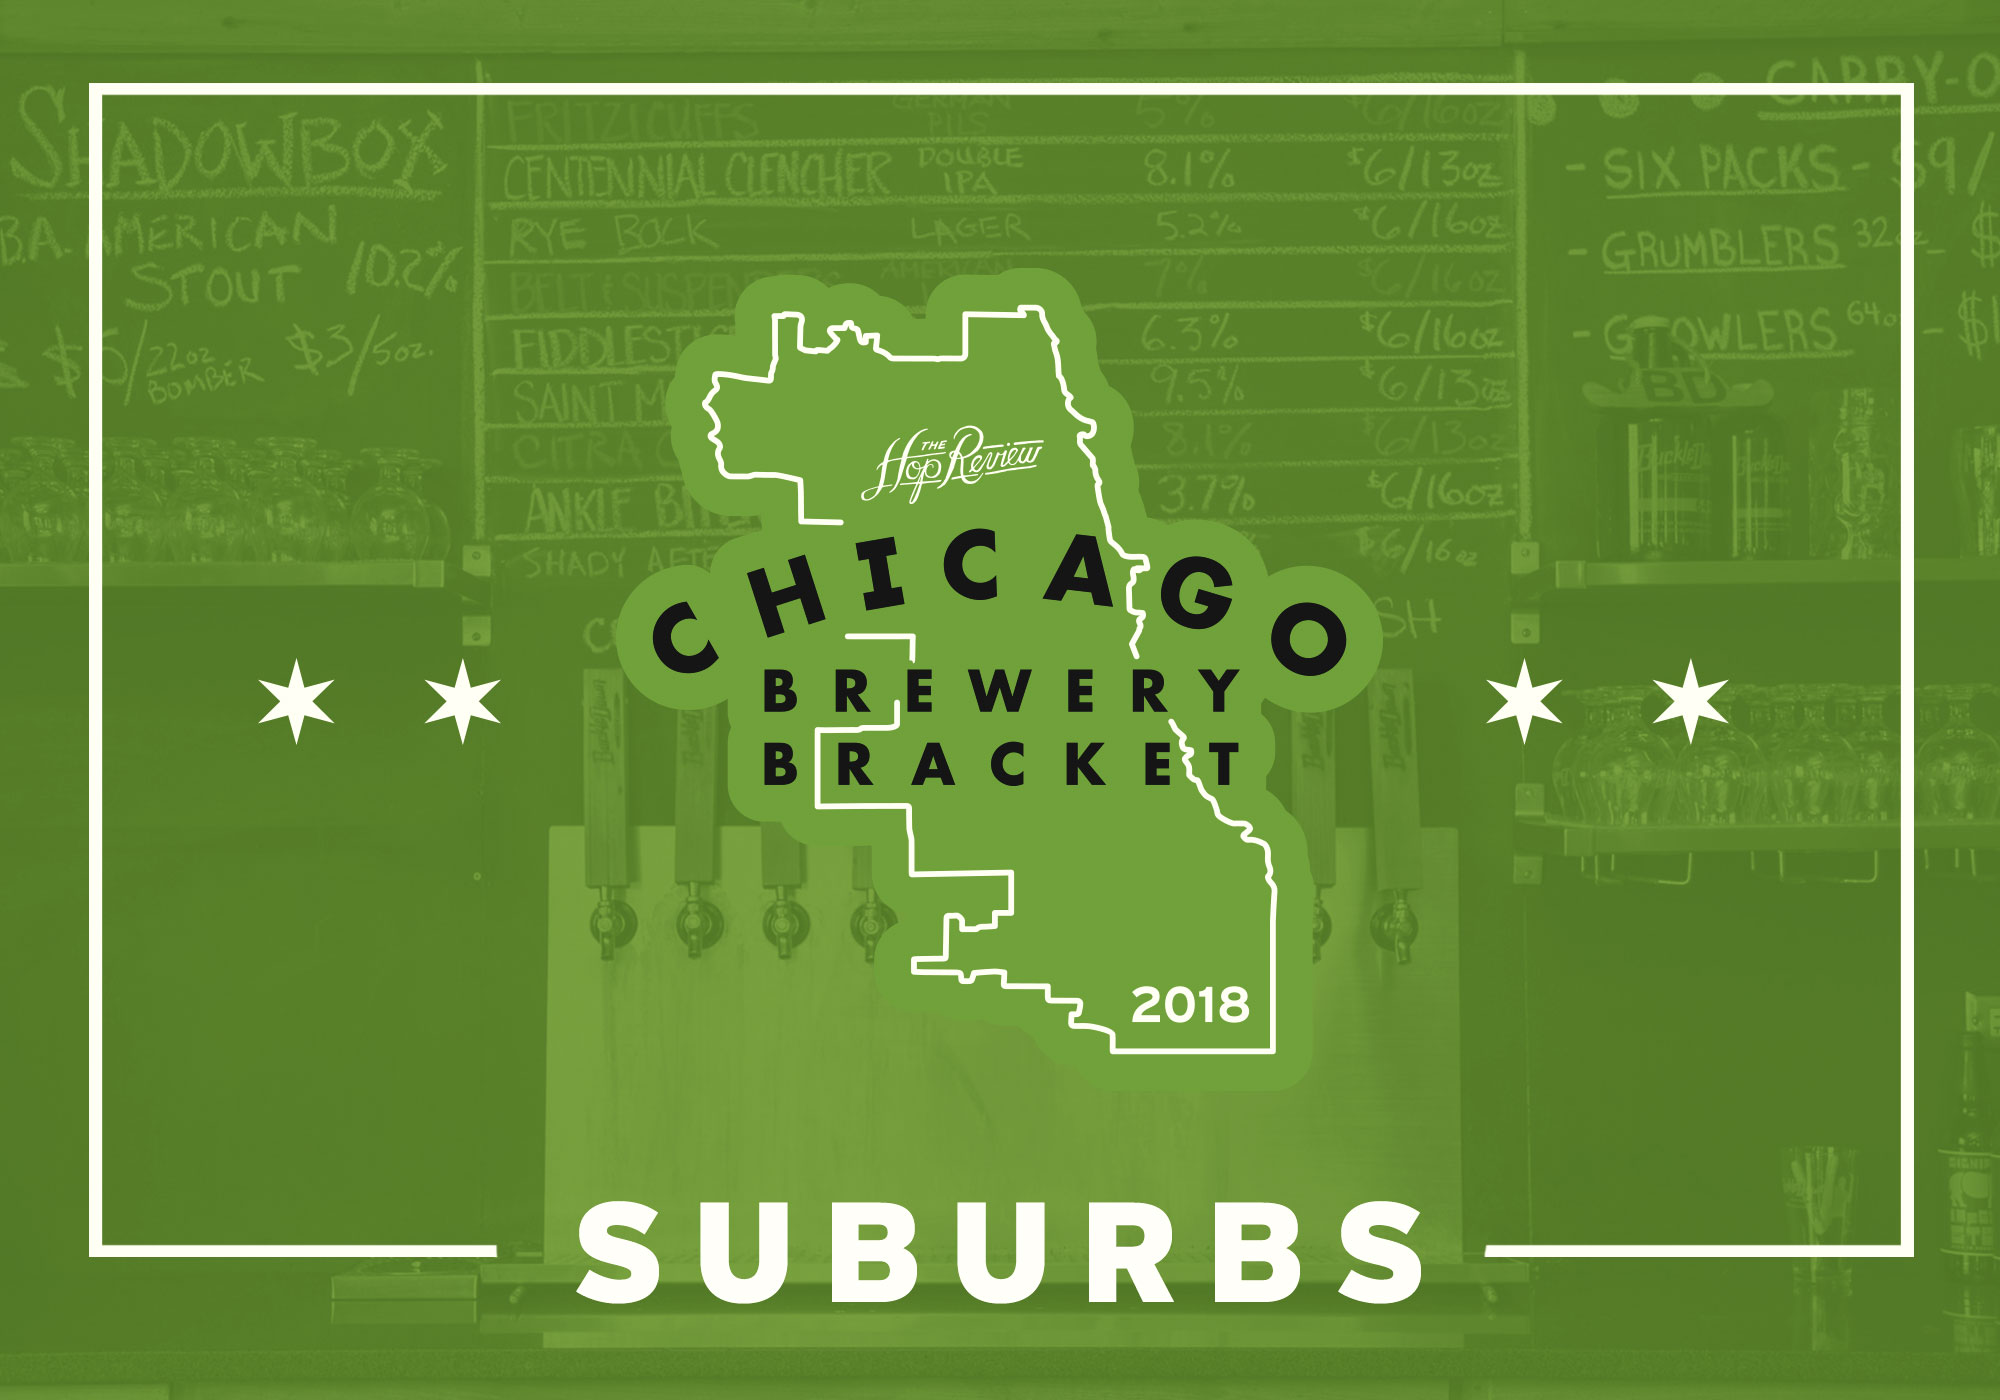 2018 Chicago Brewery Bracket: Suburbs – Rd. 2